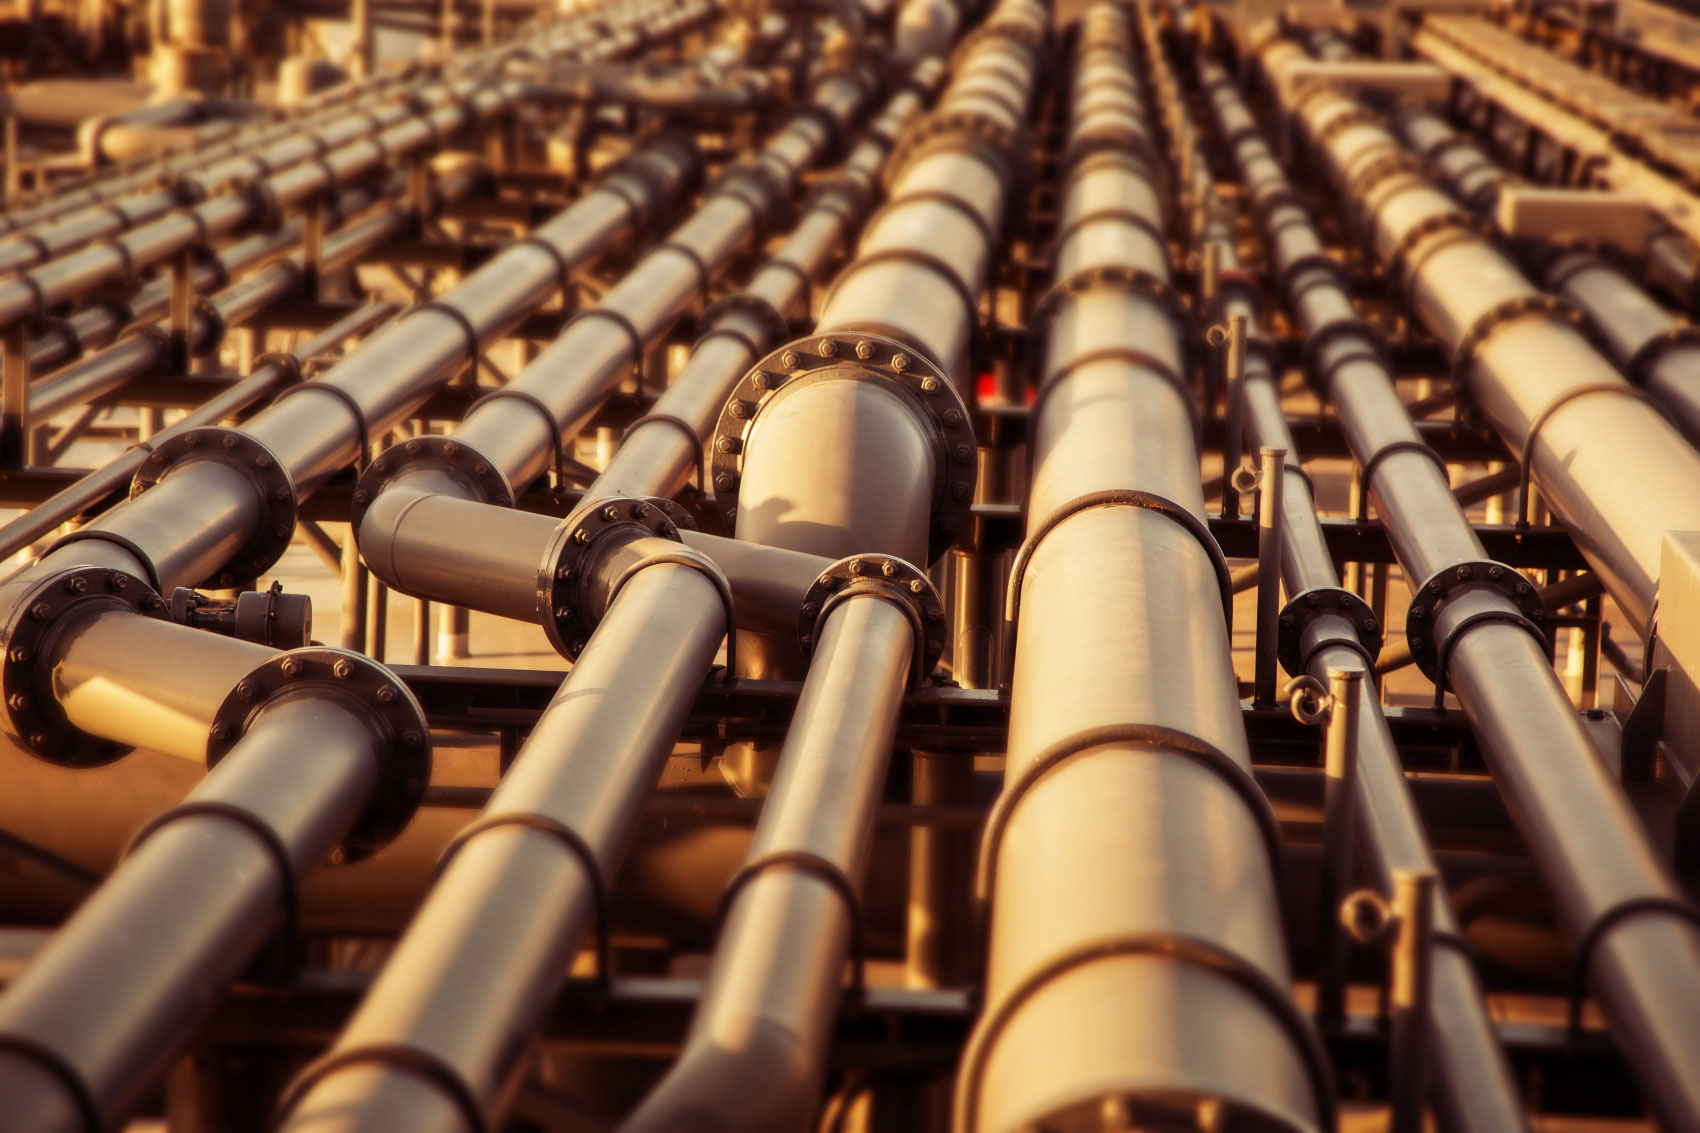 TPM Solutions Midstream helping them move crude oil, refined products, natural gas and NGLs to markets that maximize their value